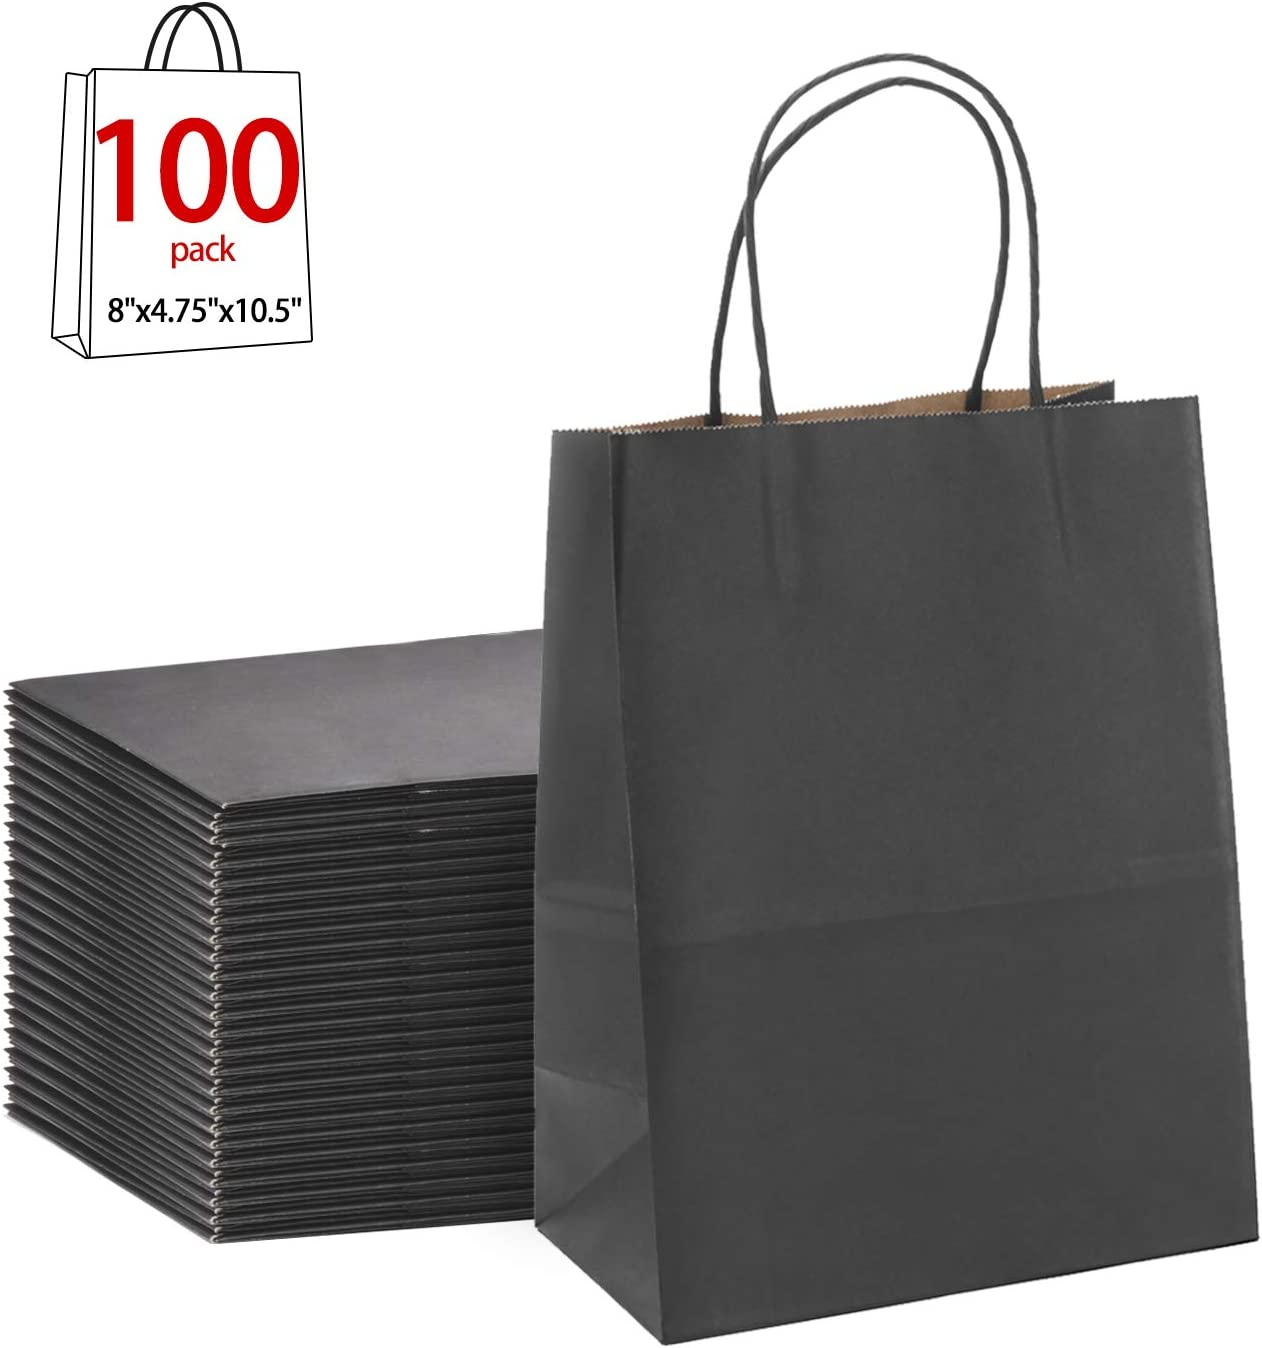 "B01AN809BS Black Gift Bags 8x4.75x10.5""100Pcs GSSUSA Sturdy Shopping Bags,Party Bags,Merchandise Bag, Kraft Bags, Retail Bags, Black Paper Bags with Handles 61sBfsCEPUL"